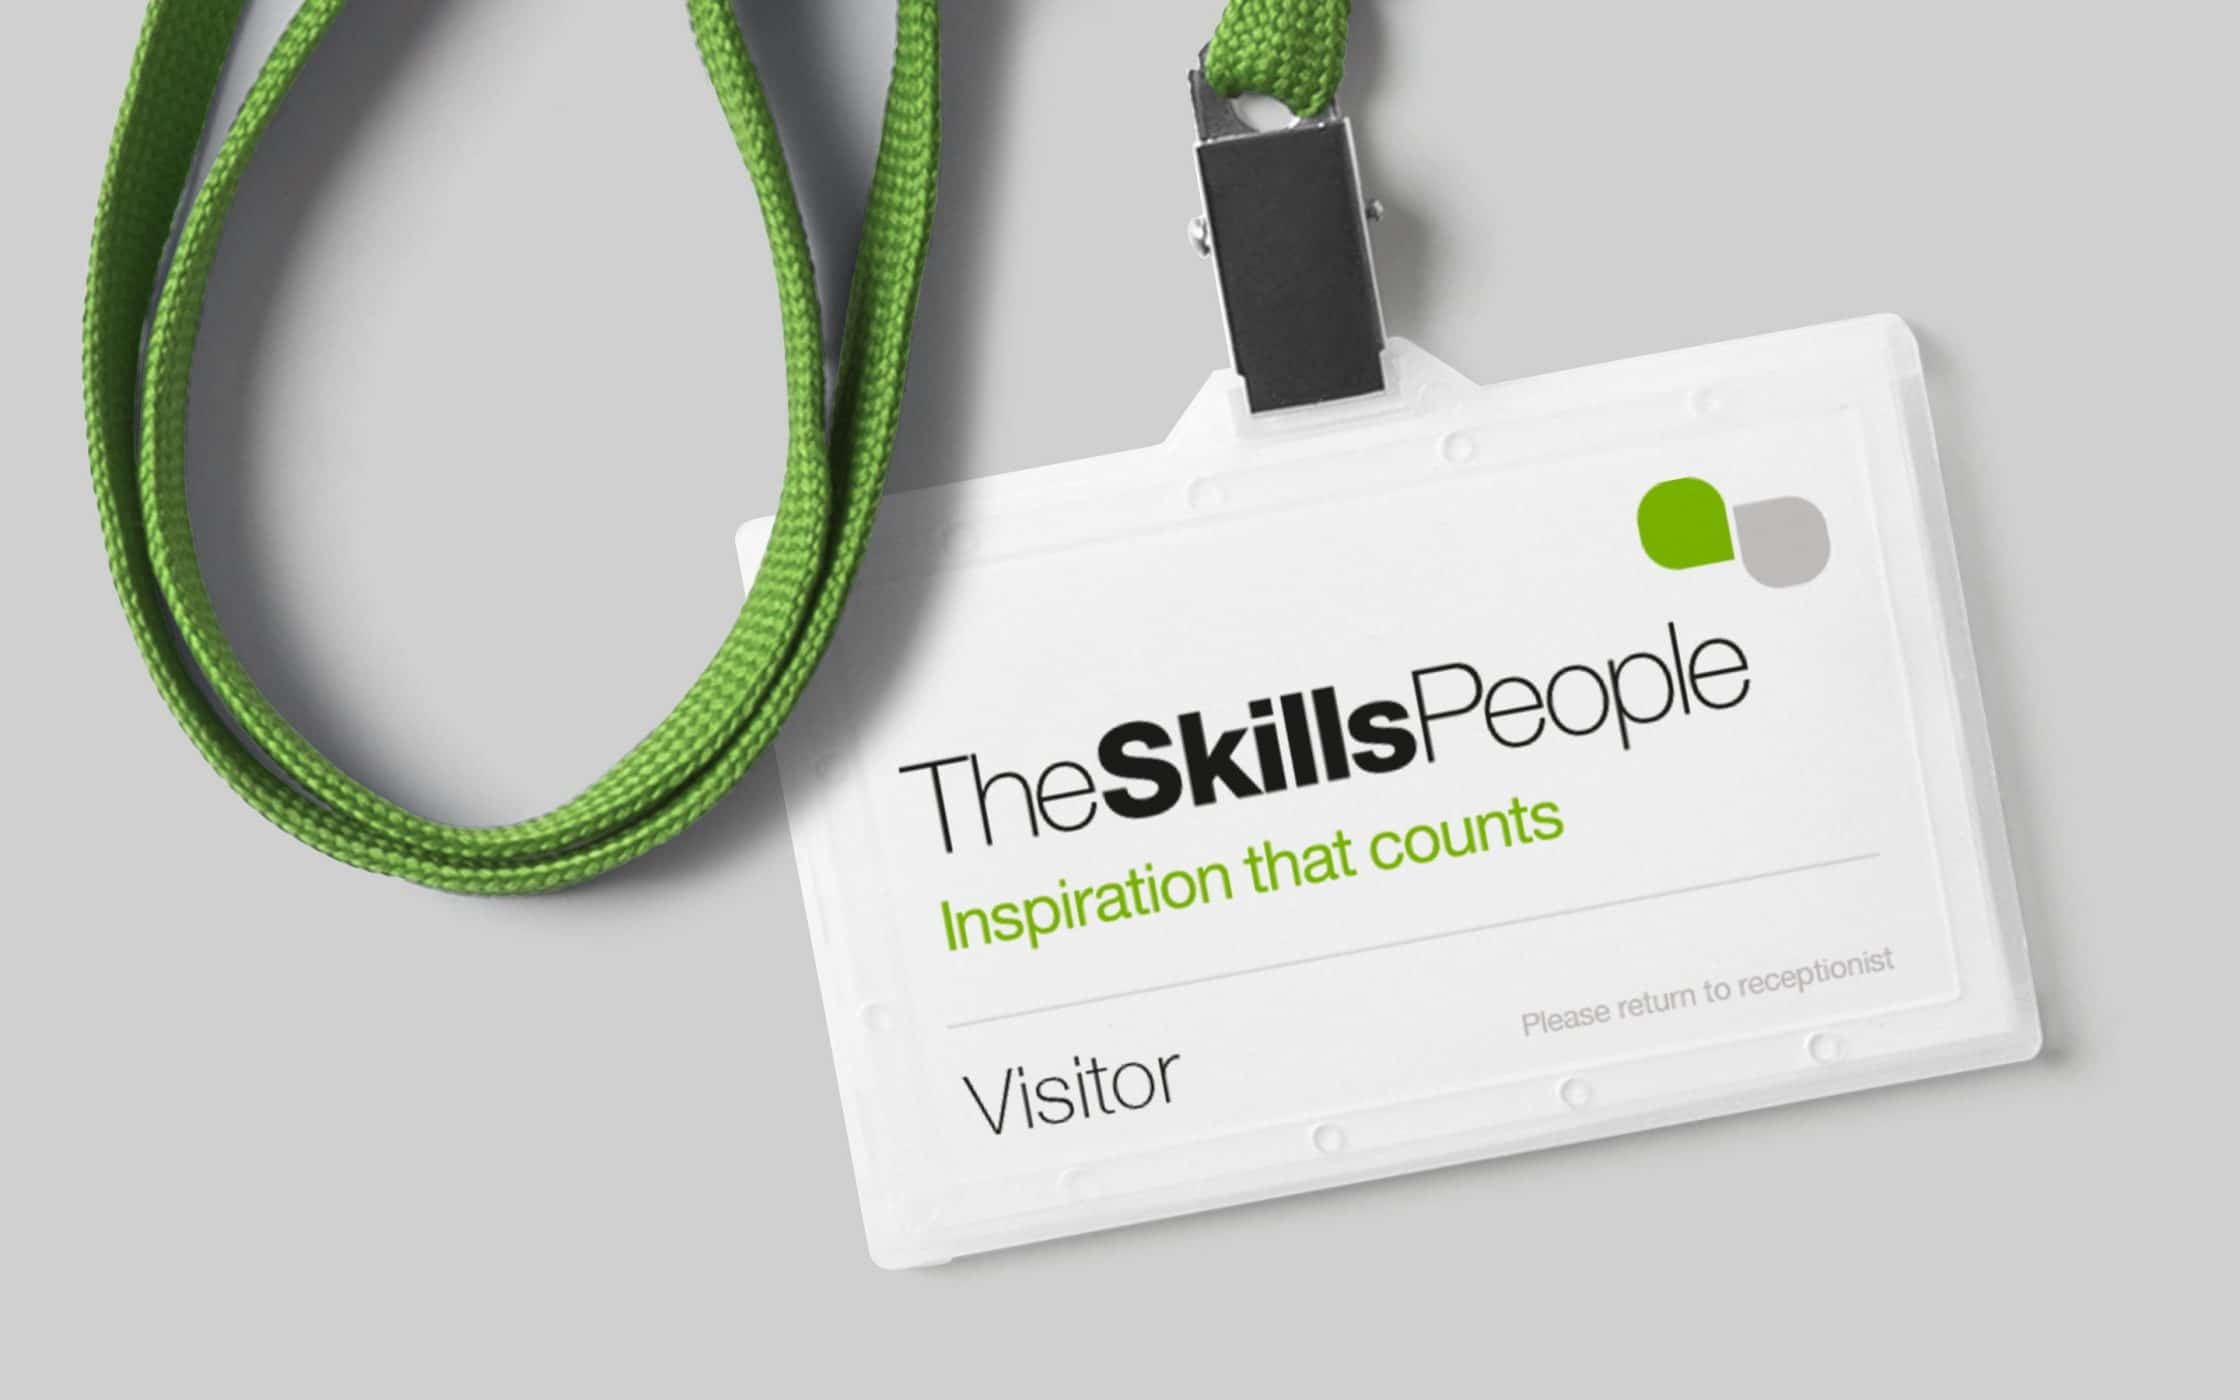 Close up of The Skills People lanyard carriage with a visitor card inside.